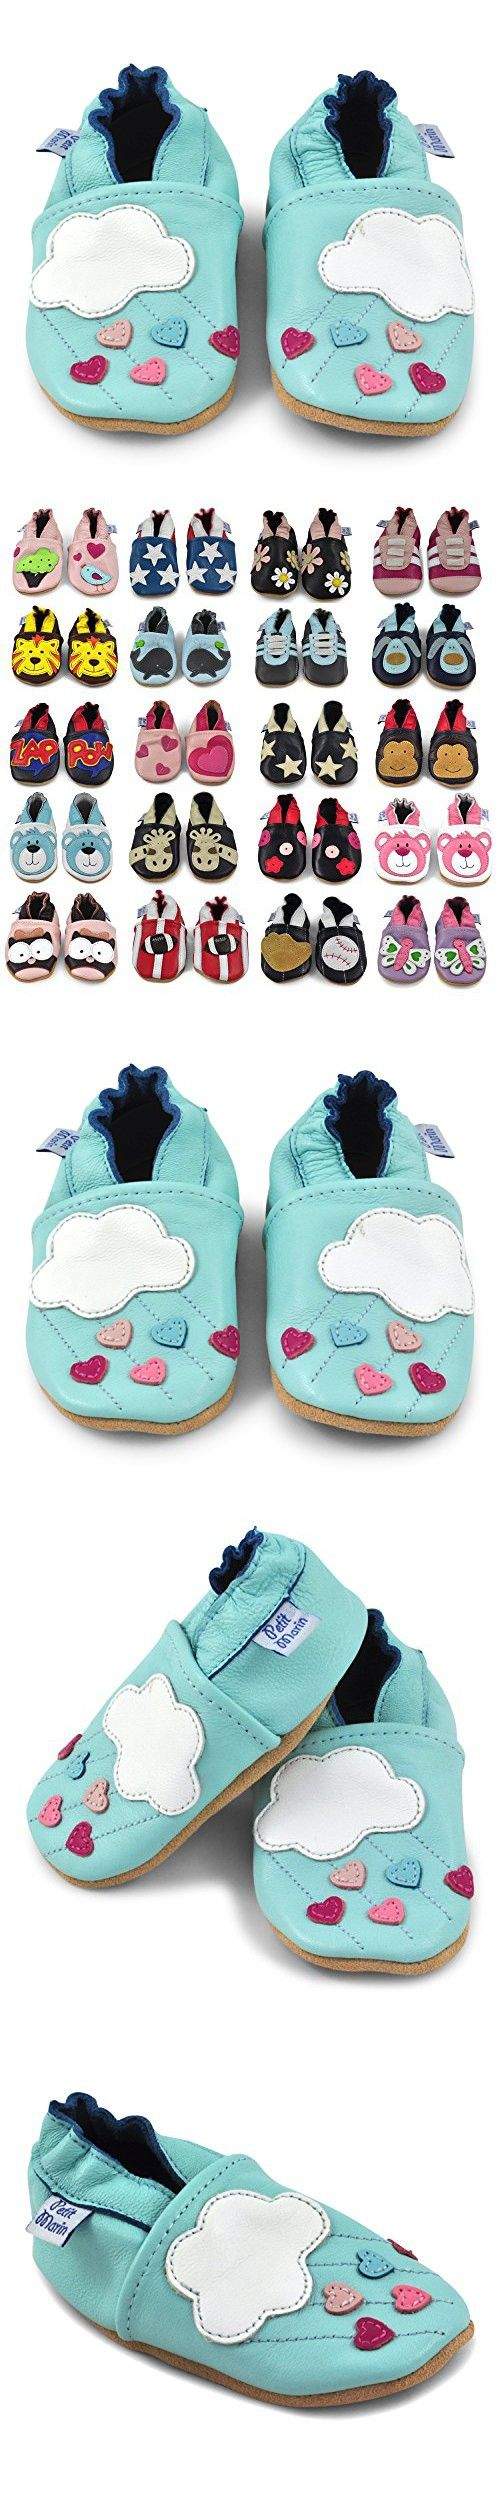 91ec16abab70c Petit Marin Beautiful Soft Leather Baby Shoes with Suede Soles - Toddler   Infant  Shoes - Crib Shoes - Baby First Walking Shoes - Pre-walker Shoes - Clouds  ...